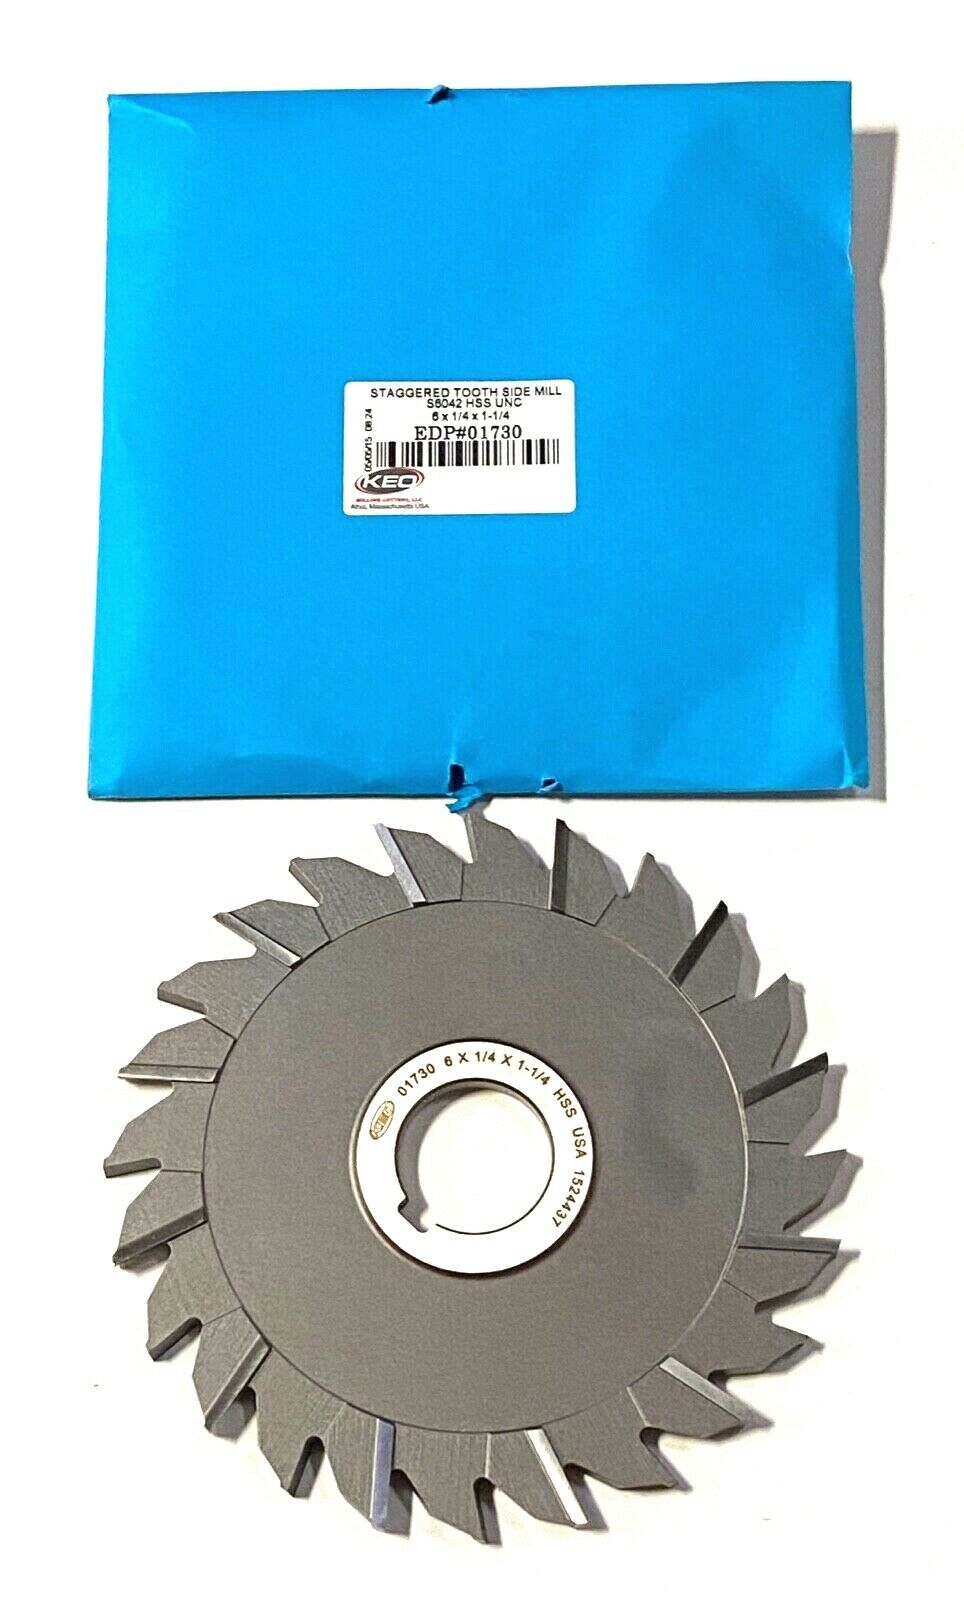 Standard Cut 1-1//4 Arbor Hole 9//32 Width Aluminum KEO Milling 04450 Staggered Tooth Milling Cutter,A Style HSS 16 Teeth Uncoated Coating 6 Cutting Diameter